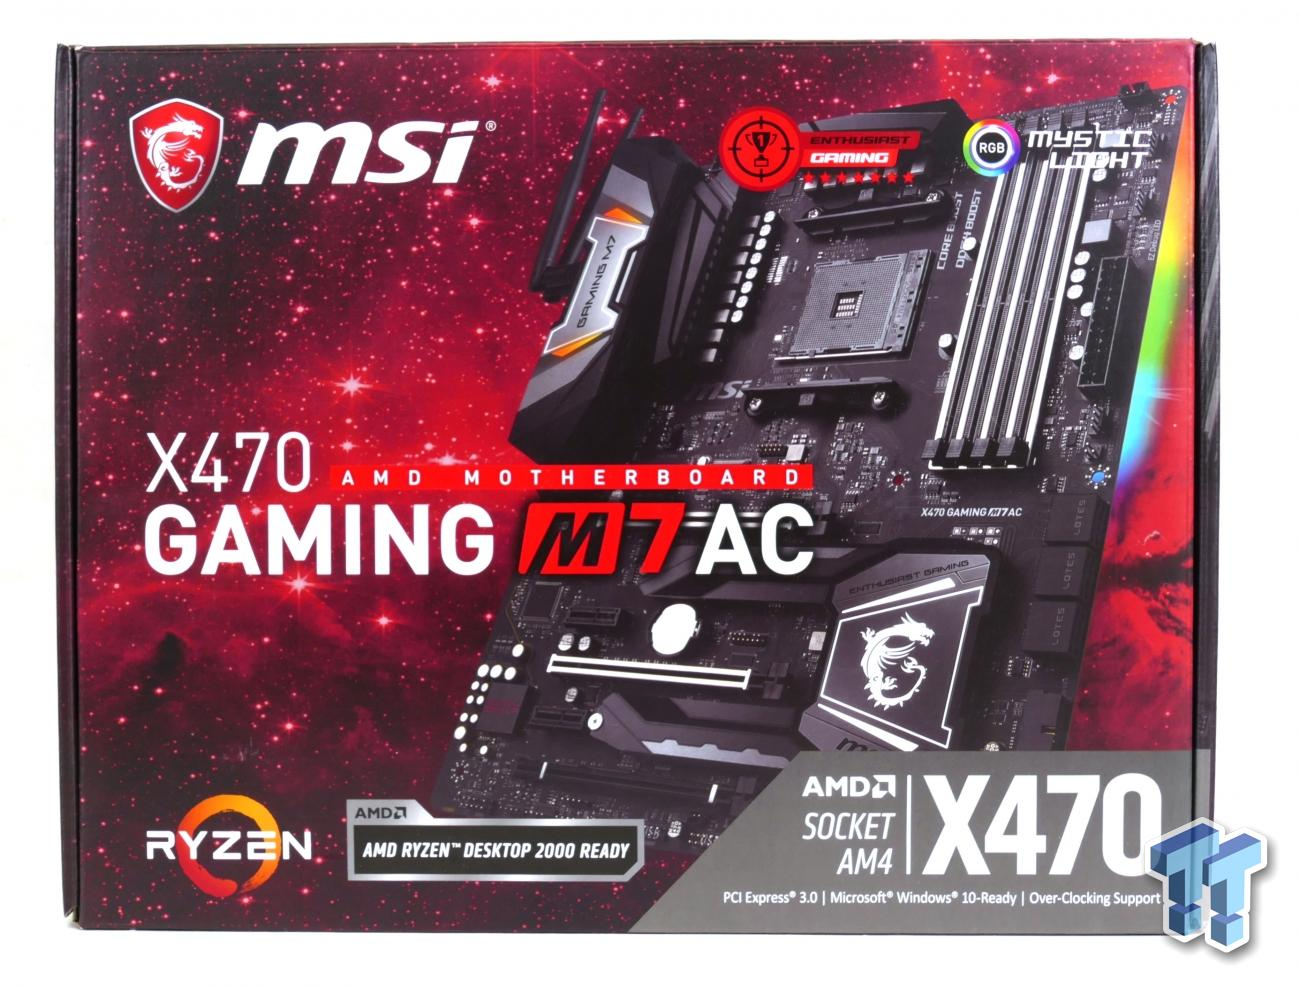 MSI X470 Gaming M7 AC (AMD X470) Motherboard Review